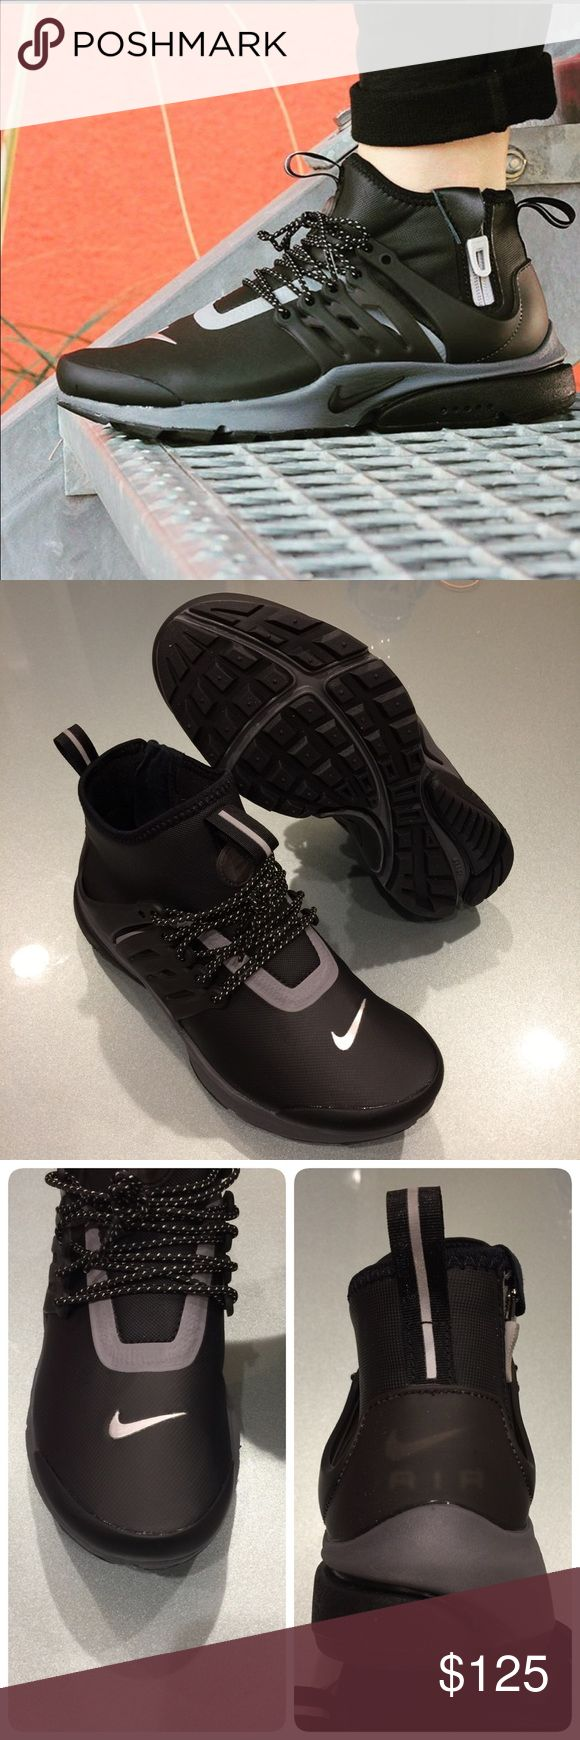 🍀New🍀 NIKE Air Presto Mid Utility ~ size 7 brand new no lid  size 7 black/reflect silver  comes from smoke free home  100% authentic M1700071 Nike Shoes Athletic Shoes